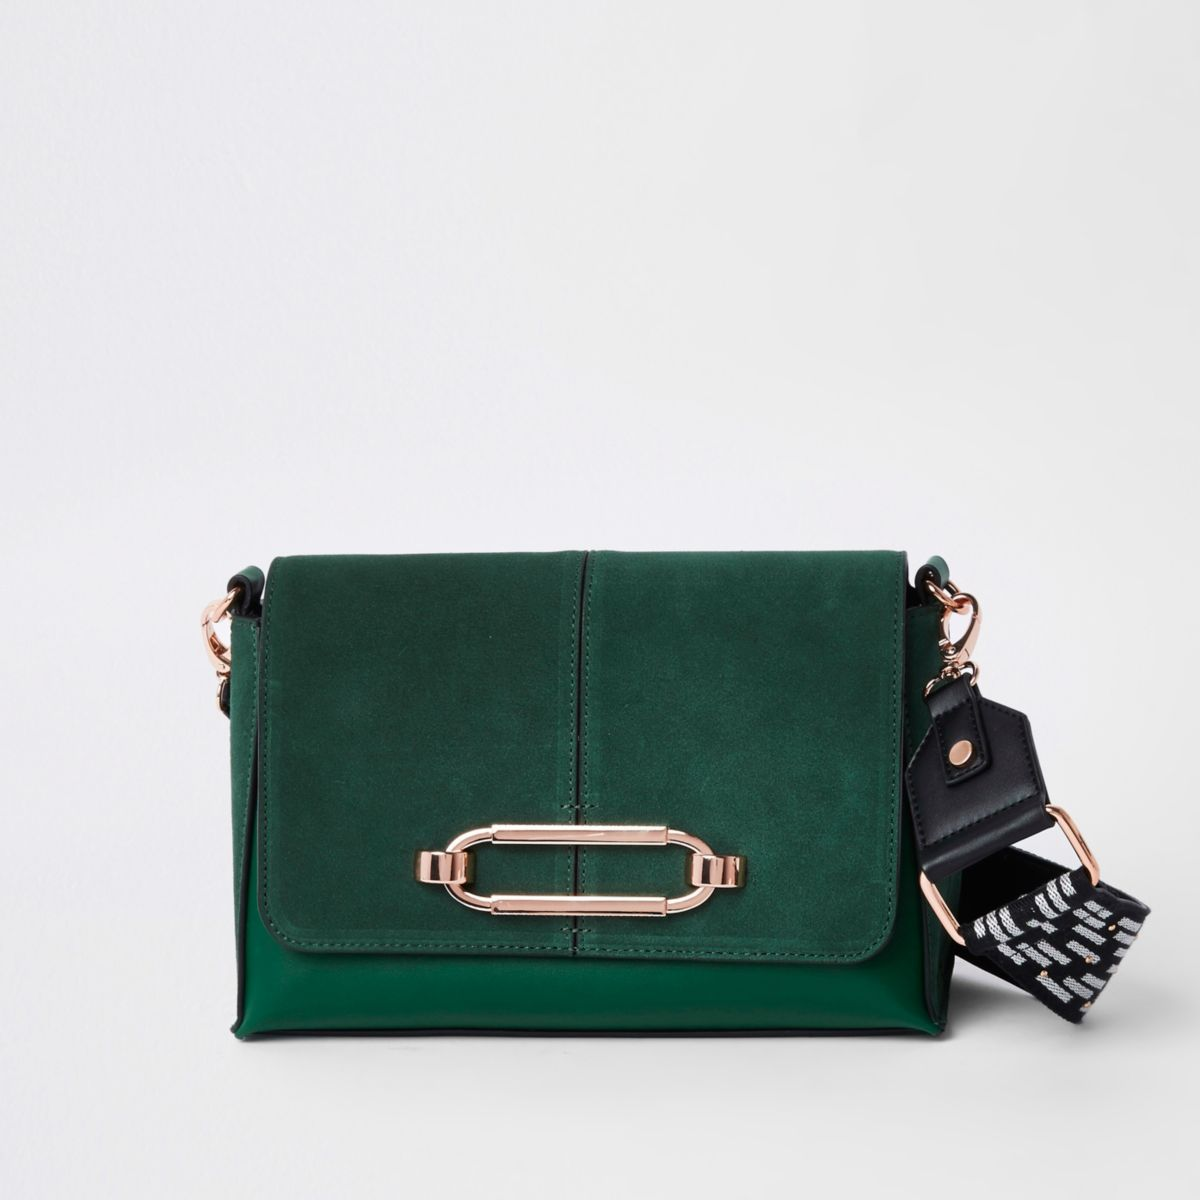 Green thick strap cross body bag | Purses crossbody